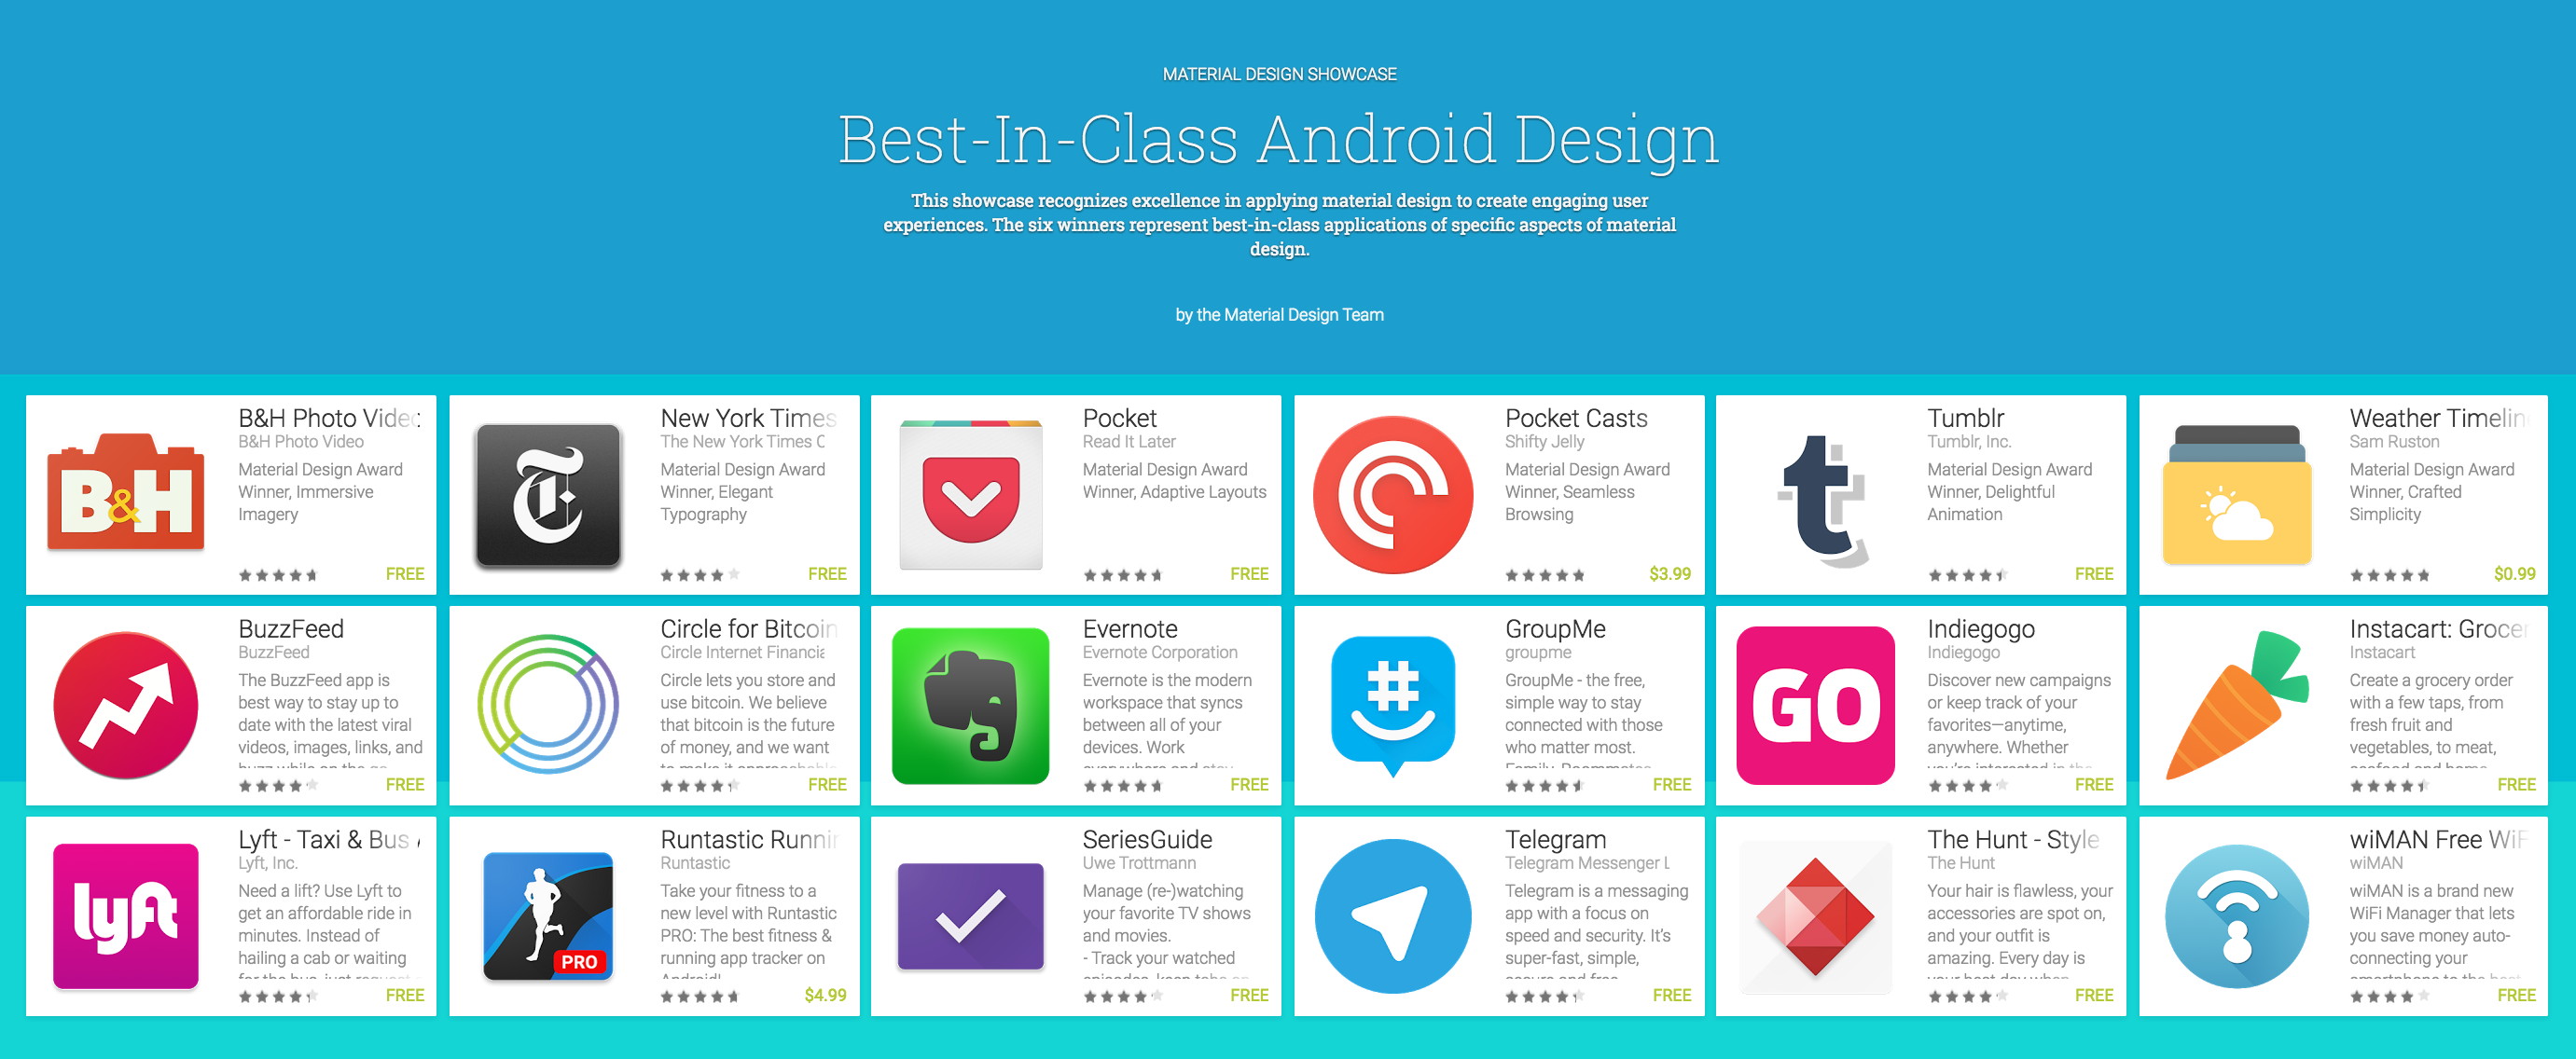 Clixto7 Google Highlights Their Favorite Material Design